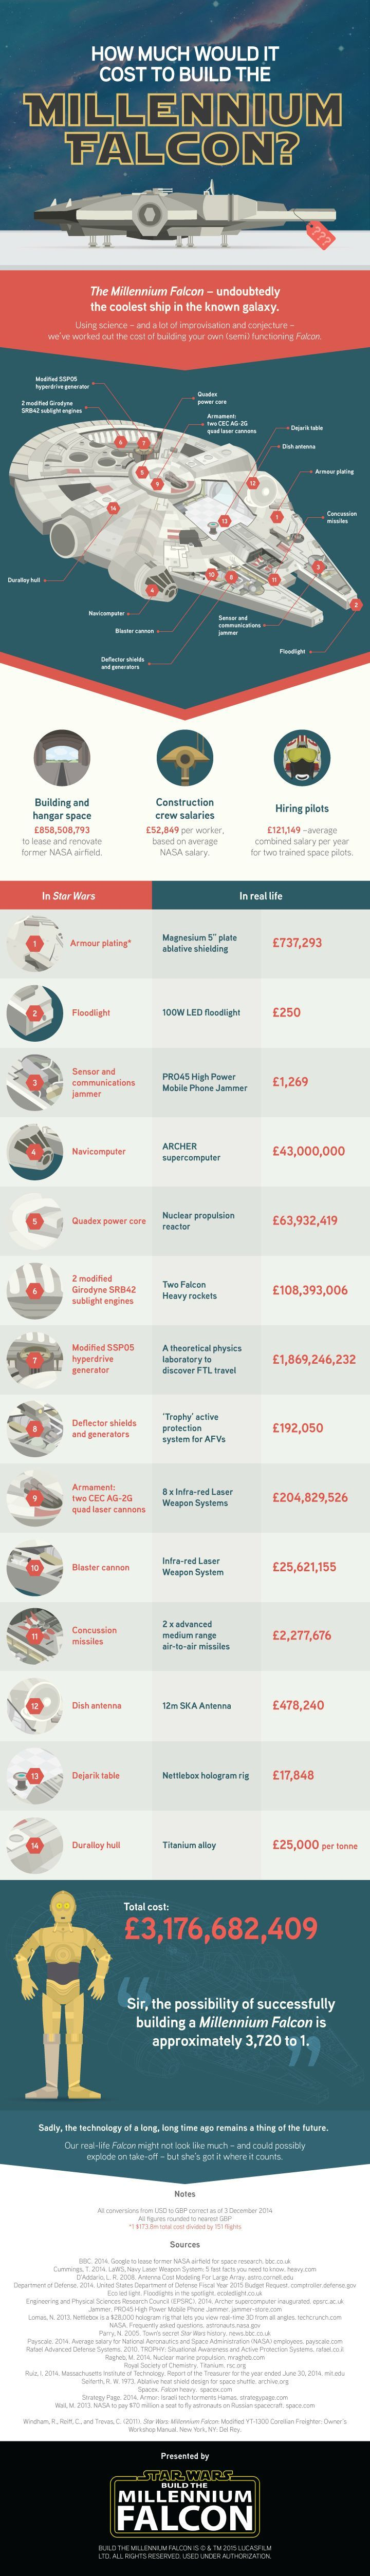 How Much Would it Cost to Build the Millennium Falcon? #infographic